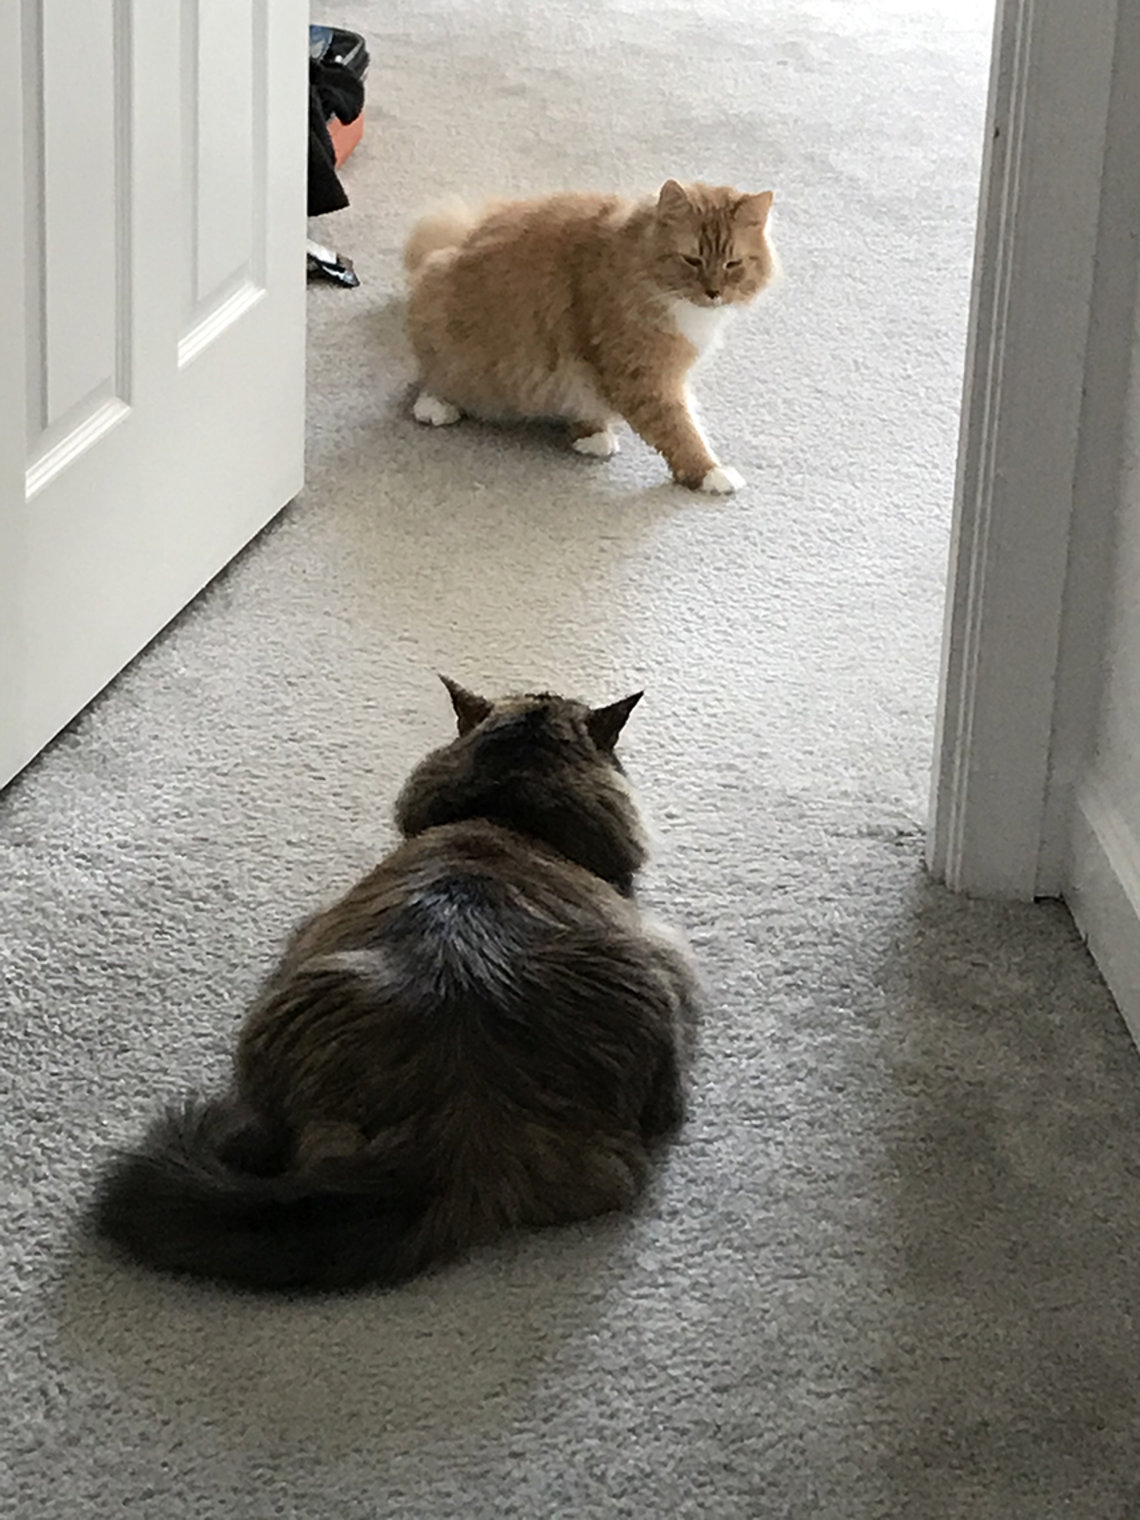 Two cats regard one another in doorway.